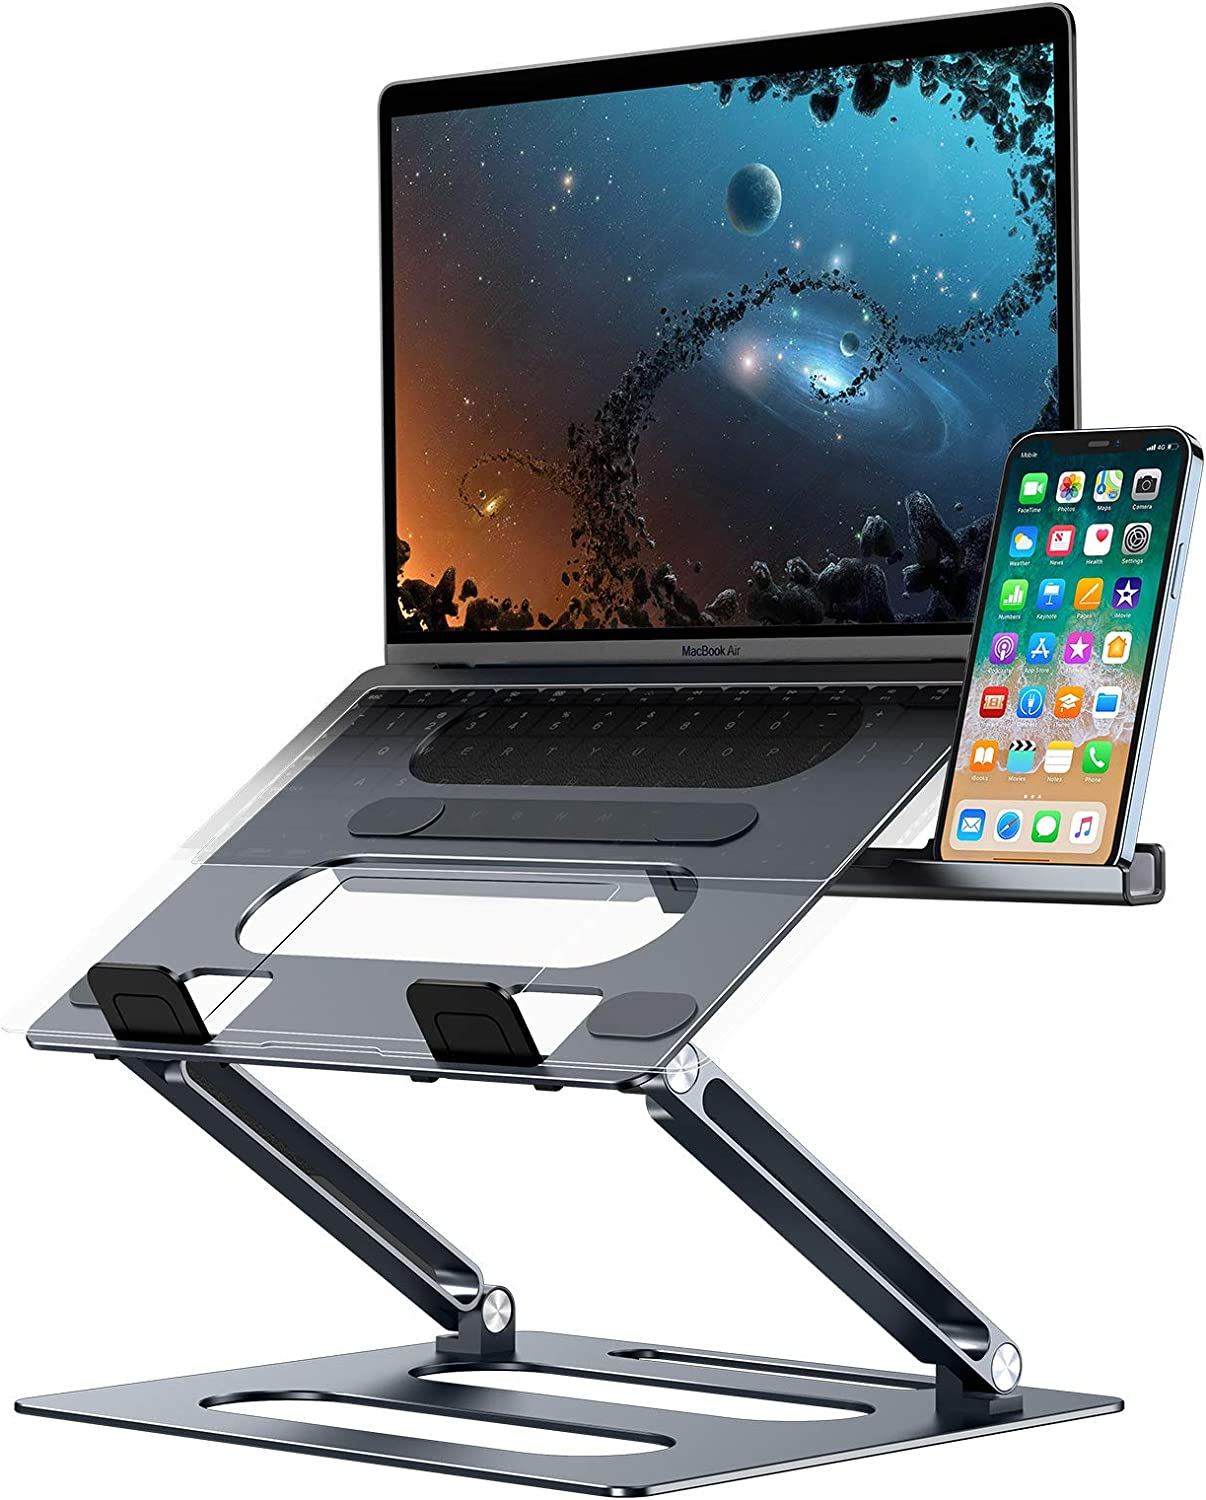 Laptop Stand, Xuenair Ergonomic Computer Stand Riser and Multi-Angle Bracket, Adjustable Height Laptop Holder with Phone Stand, Portable Notebook Stand for Mac, Lenovo More10-17 Laptop (Gray)